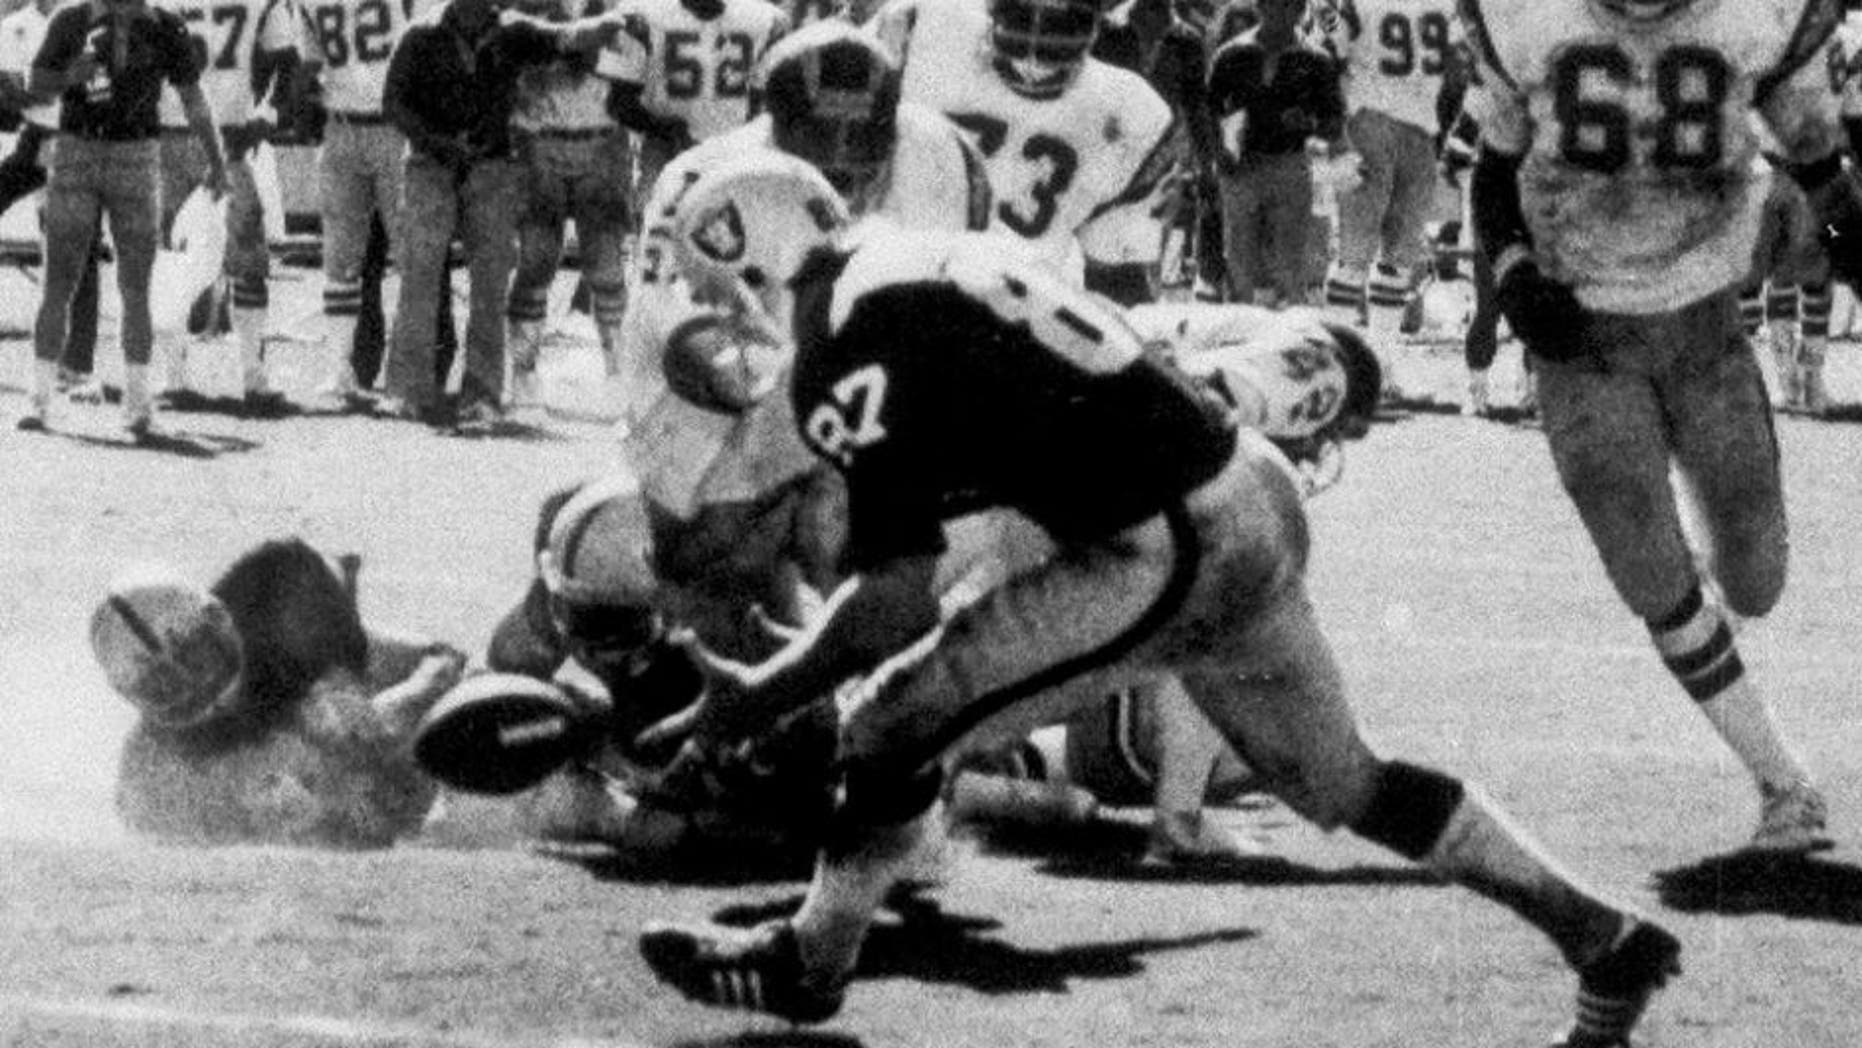 In the final play of the game between the Oakland Raiders and the San Diego Chargers, tight end Dave Casper (87) of the Raiders scoops up the ball, fumbled by Raider's quarterback Ken Stabler, on the five-yard line, in San Diego, Calif., Sept. 11, 1978. (AP Photo/San Diego Union/Thane McIntosh)